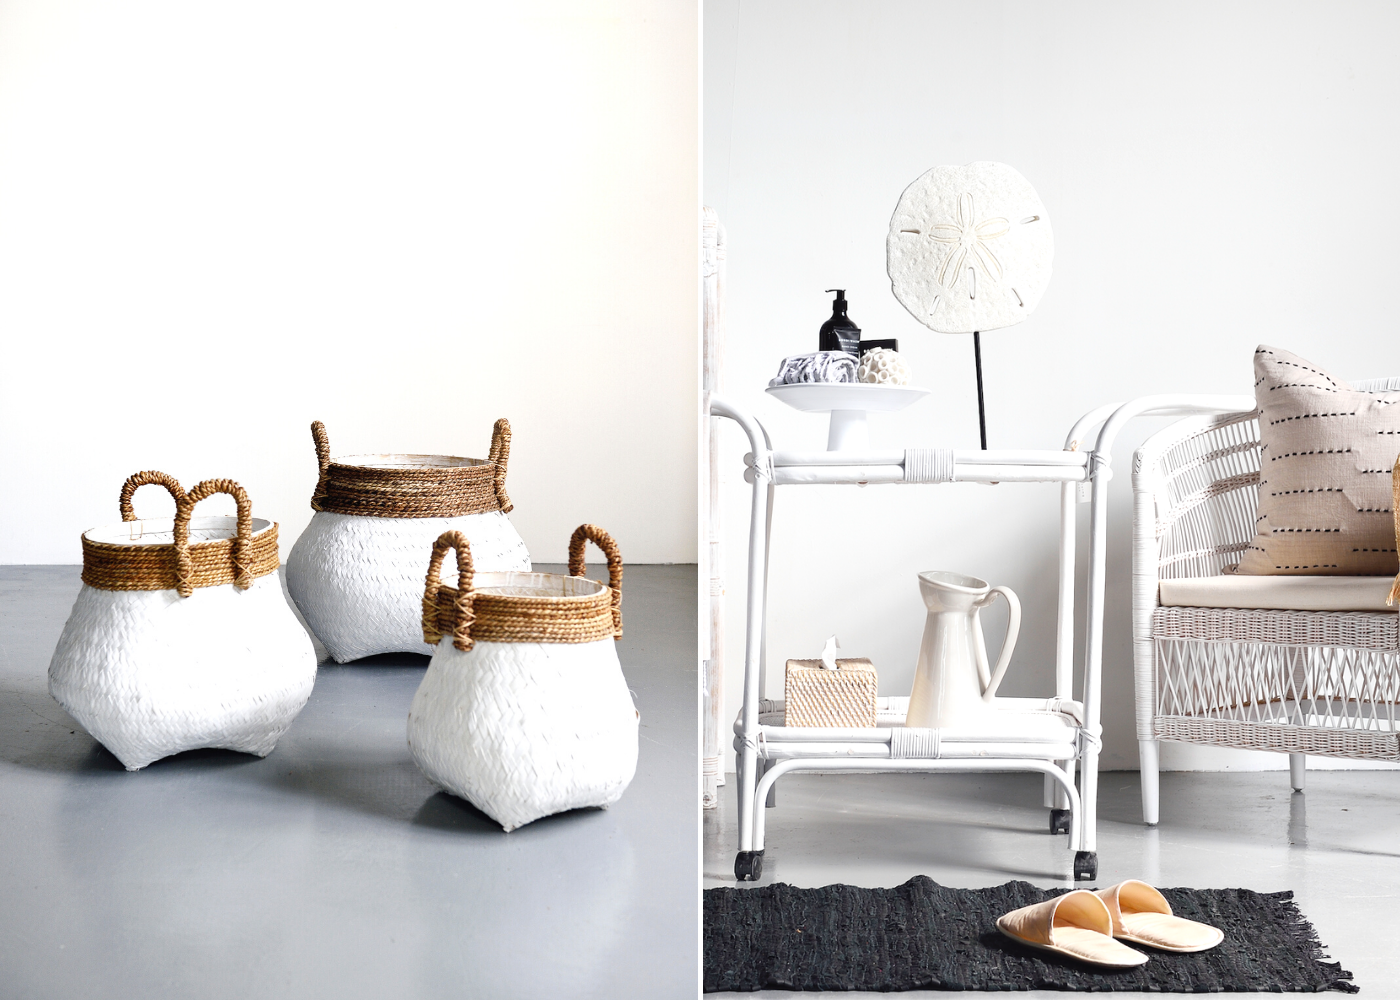 Items featured: Glam round baskets, rattan bar cart and cushion from Island Living. Photography: Island Living